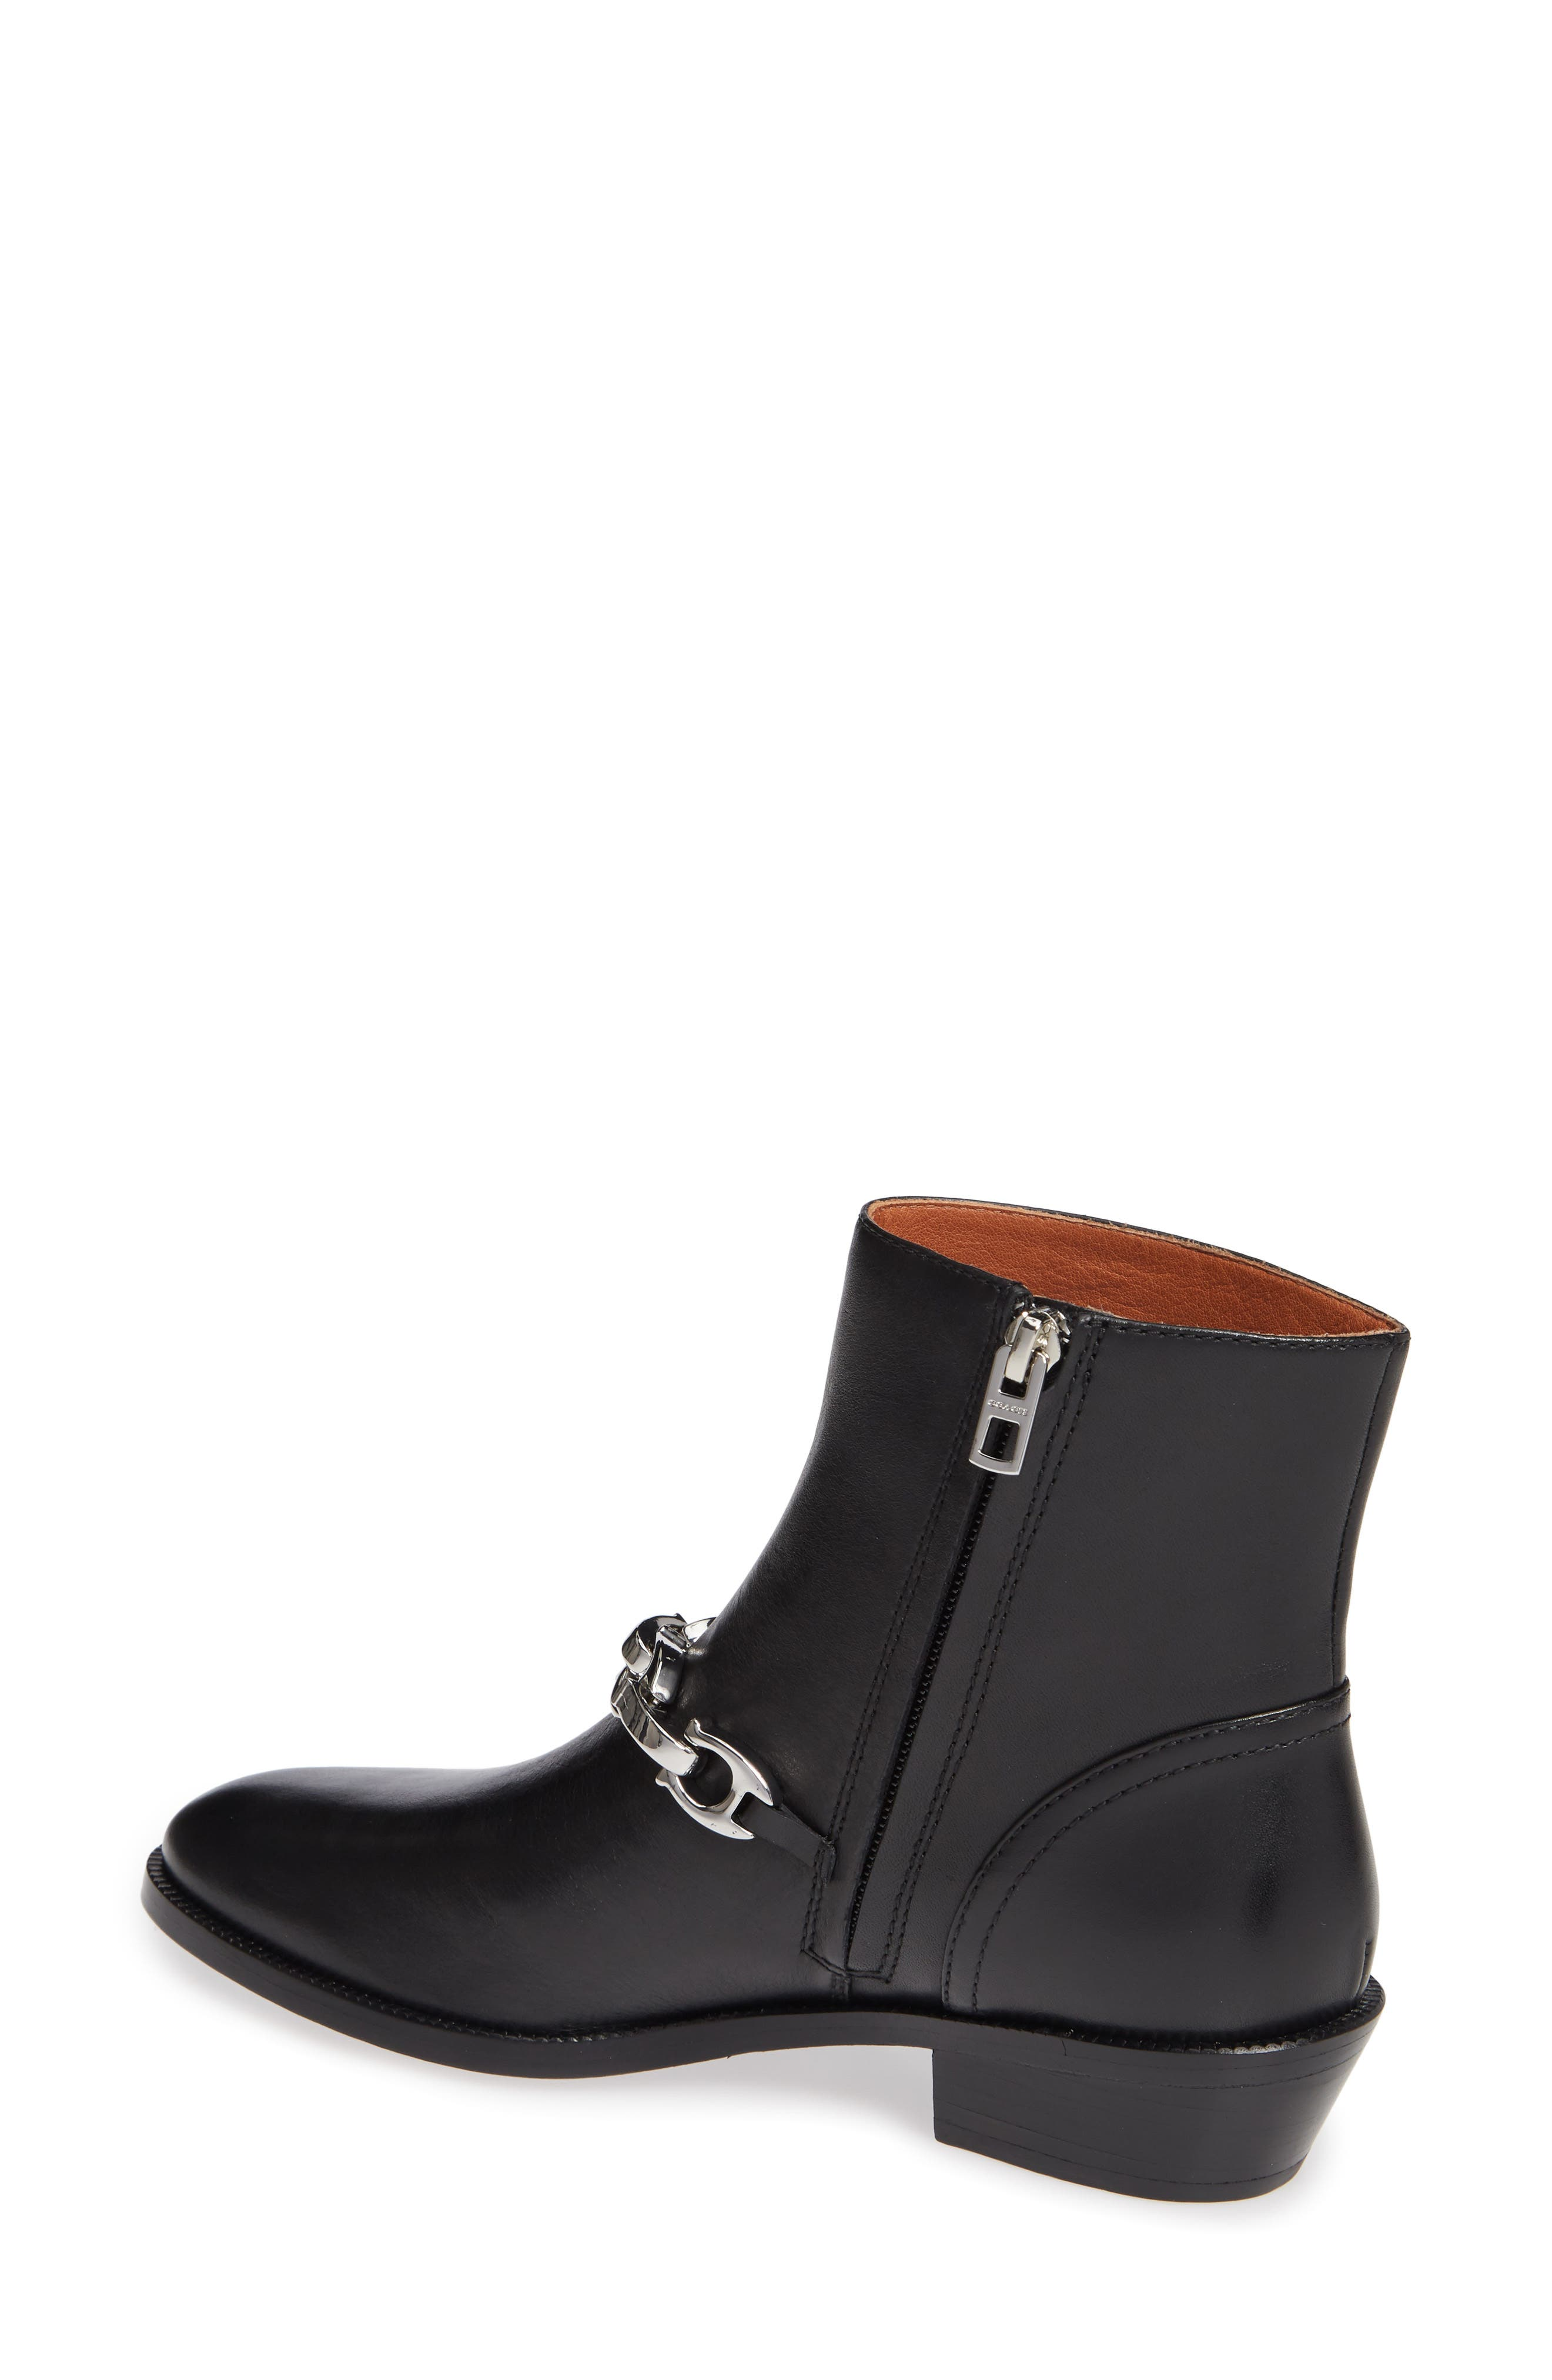 Allen Bootie,                             Alternate thumbnail 2, color,                             BLACK LEATHER